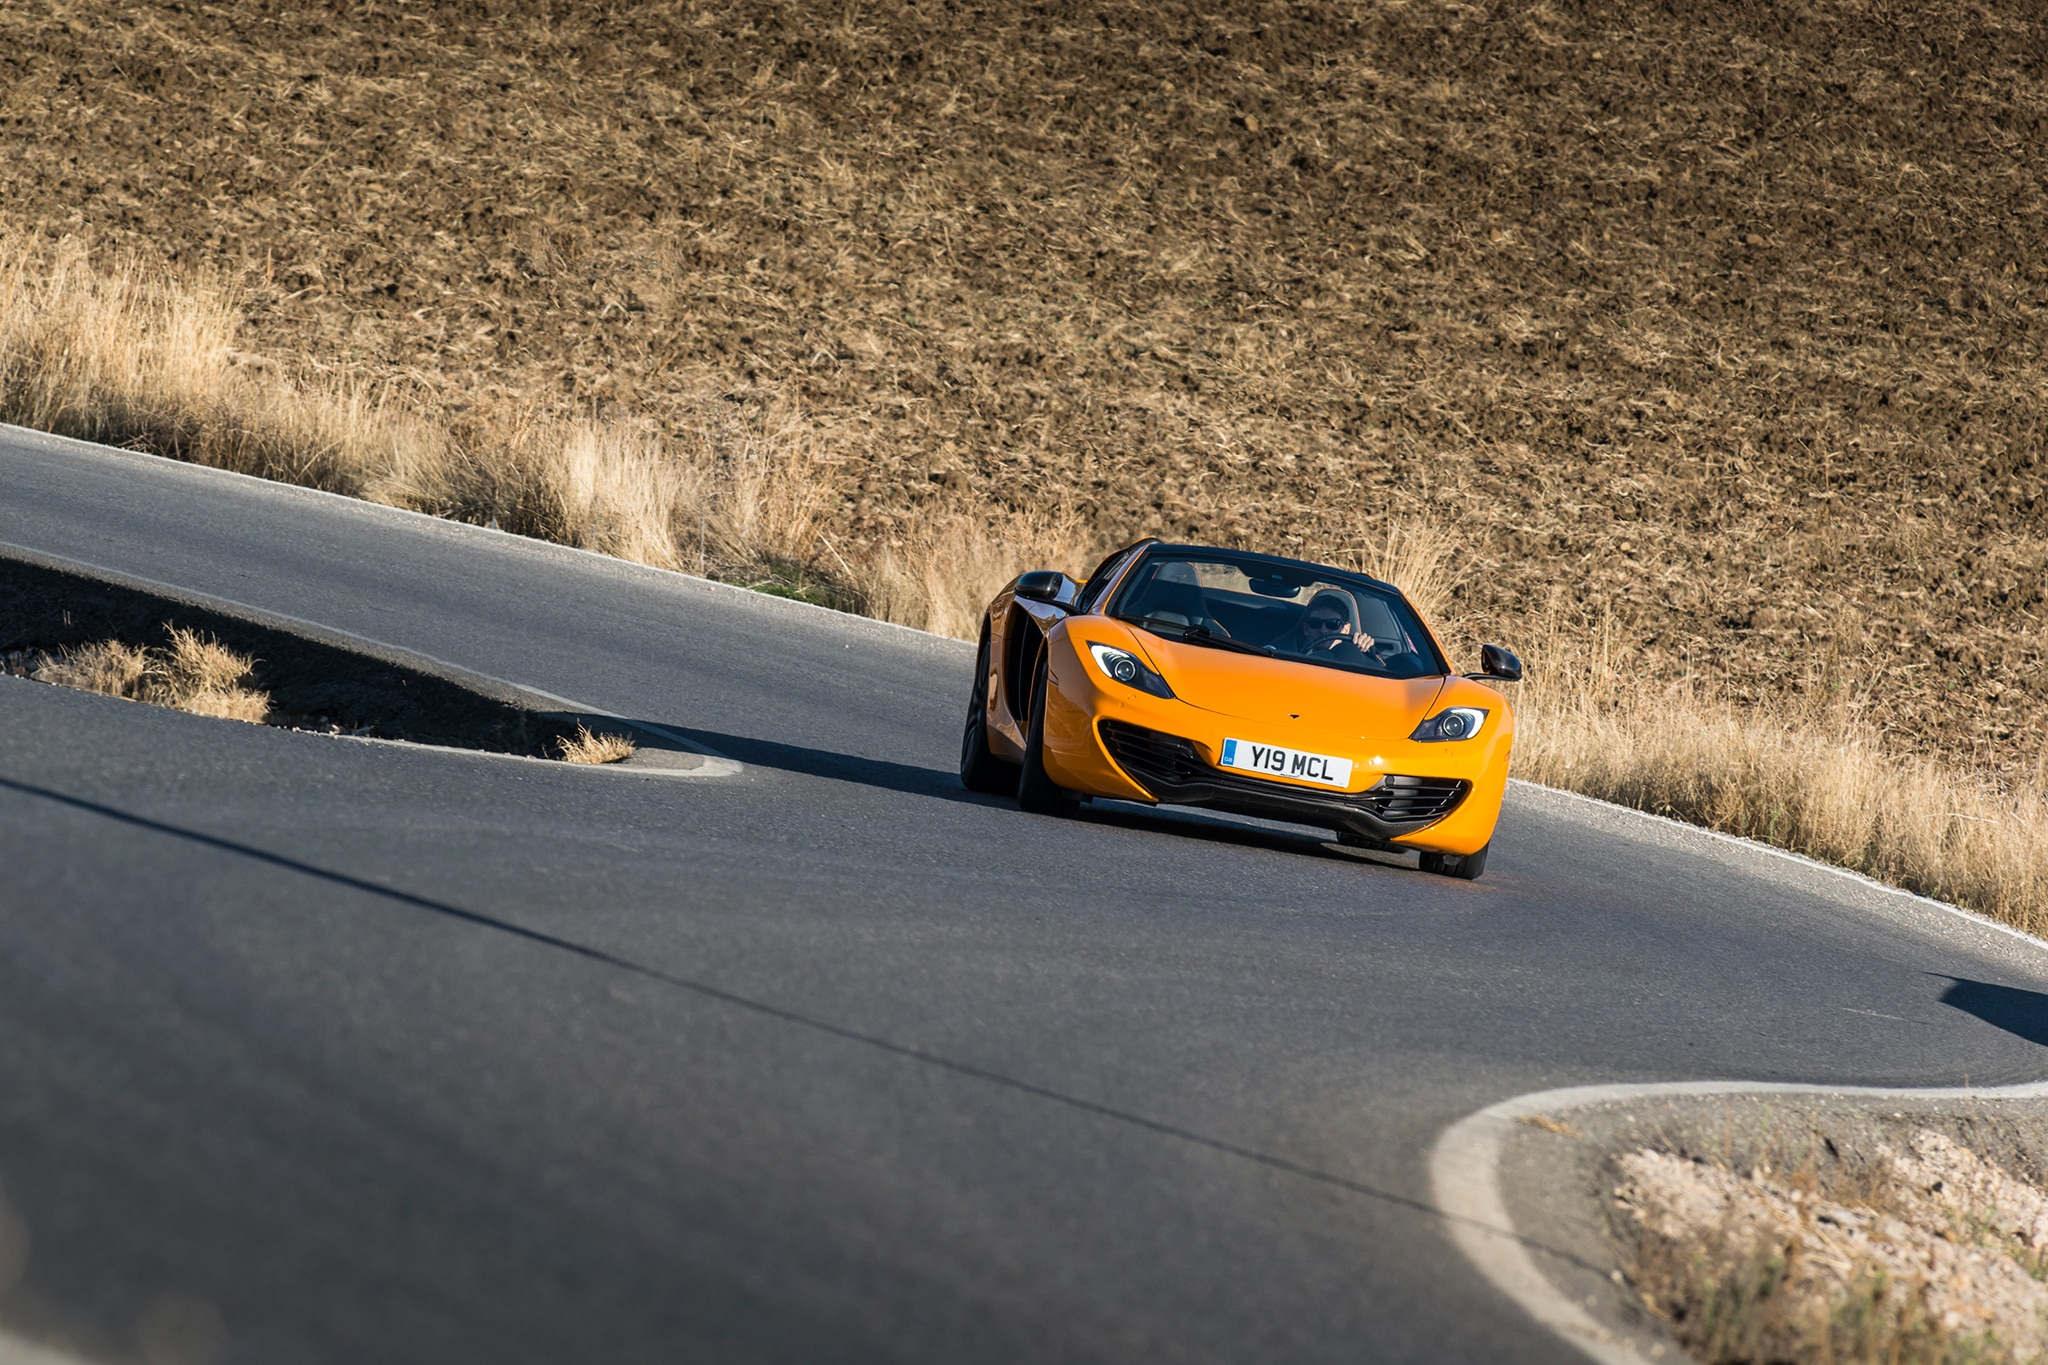 2013 McLaren 12C Spider Profile Front View In Motion Open 11